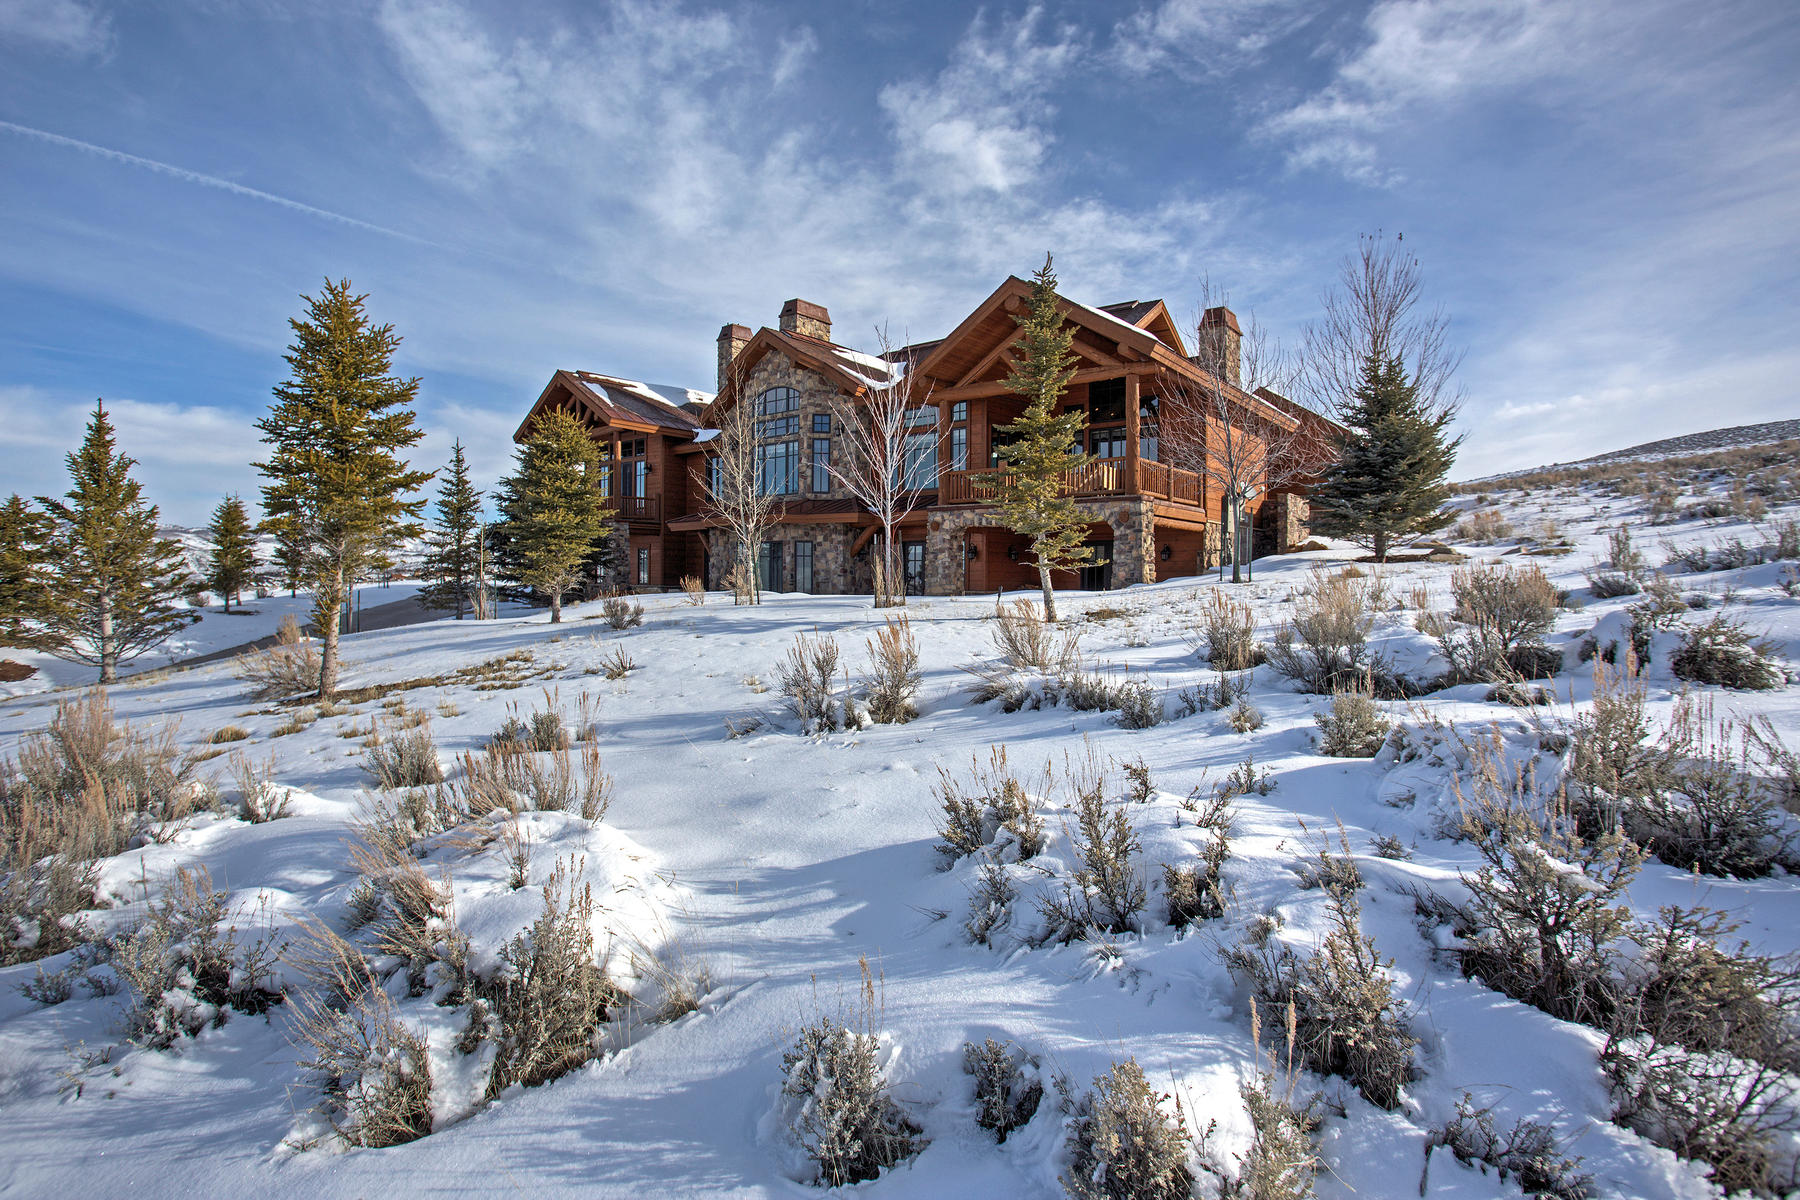 Single Family Home for Sale at Fabulous Large Home in Promontory with Beautiful Views 6262 Dakota Trail Lot #32 Park City, Utah, 84098 United States